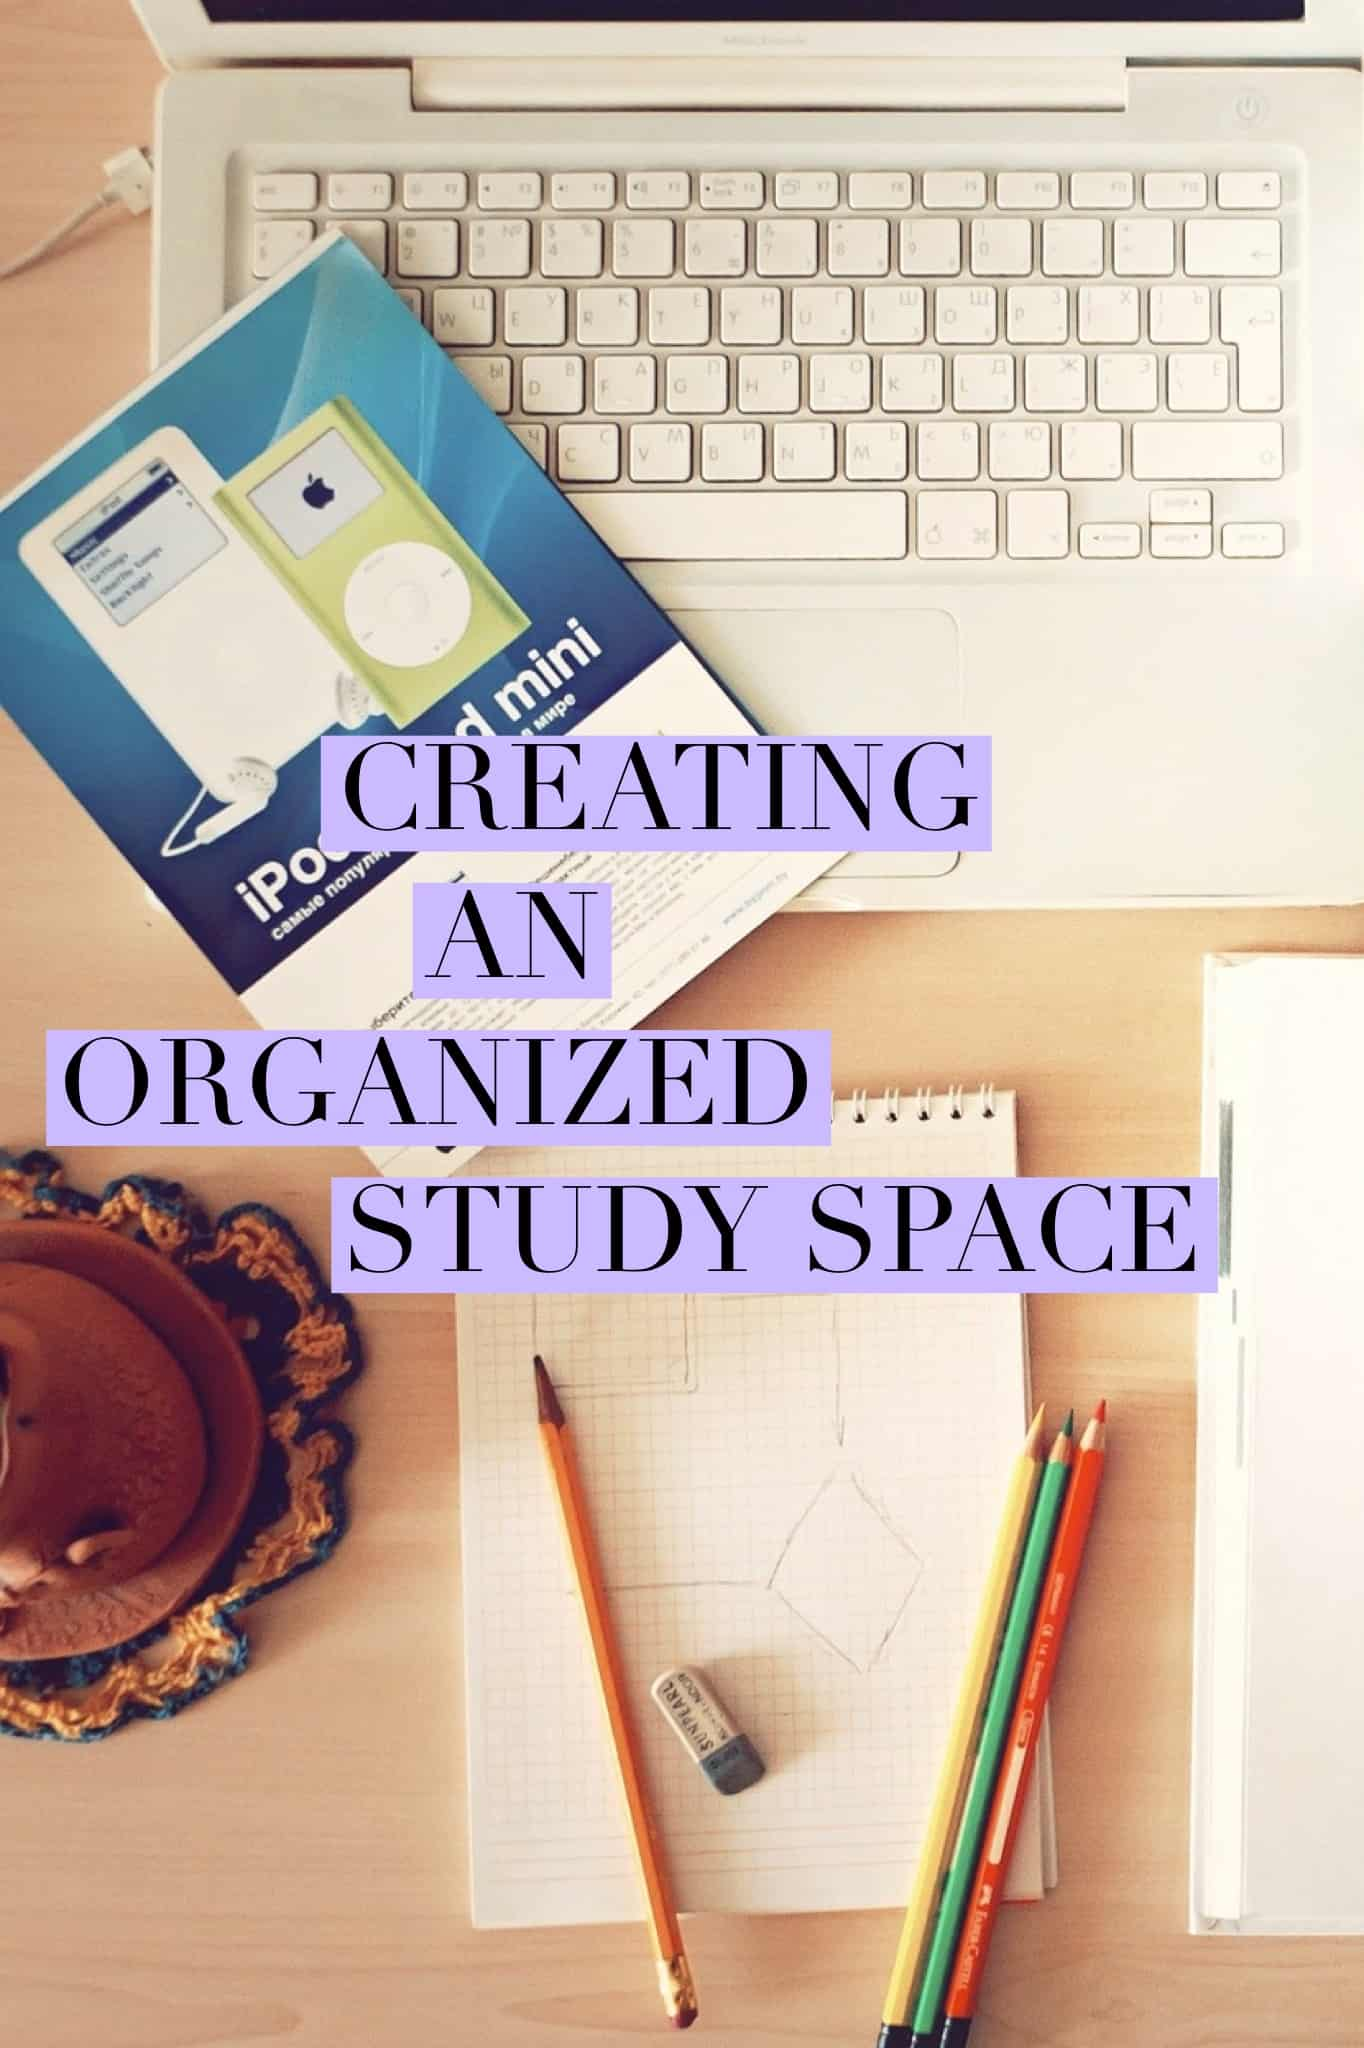 Creating an Organized Study Space title